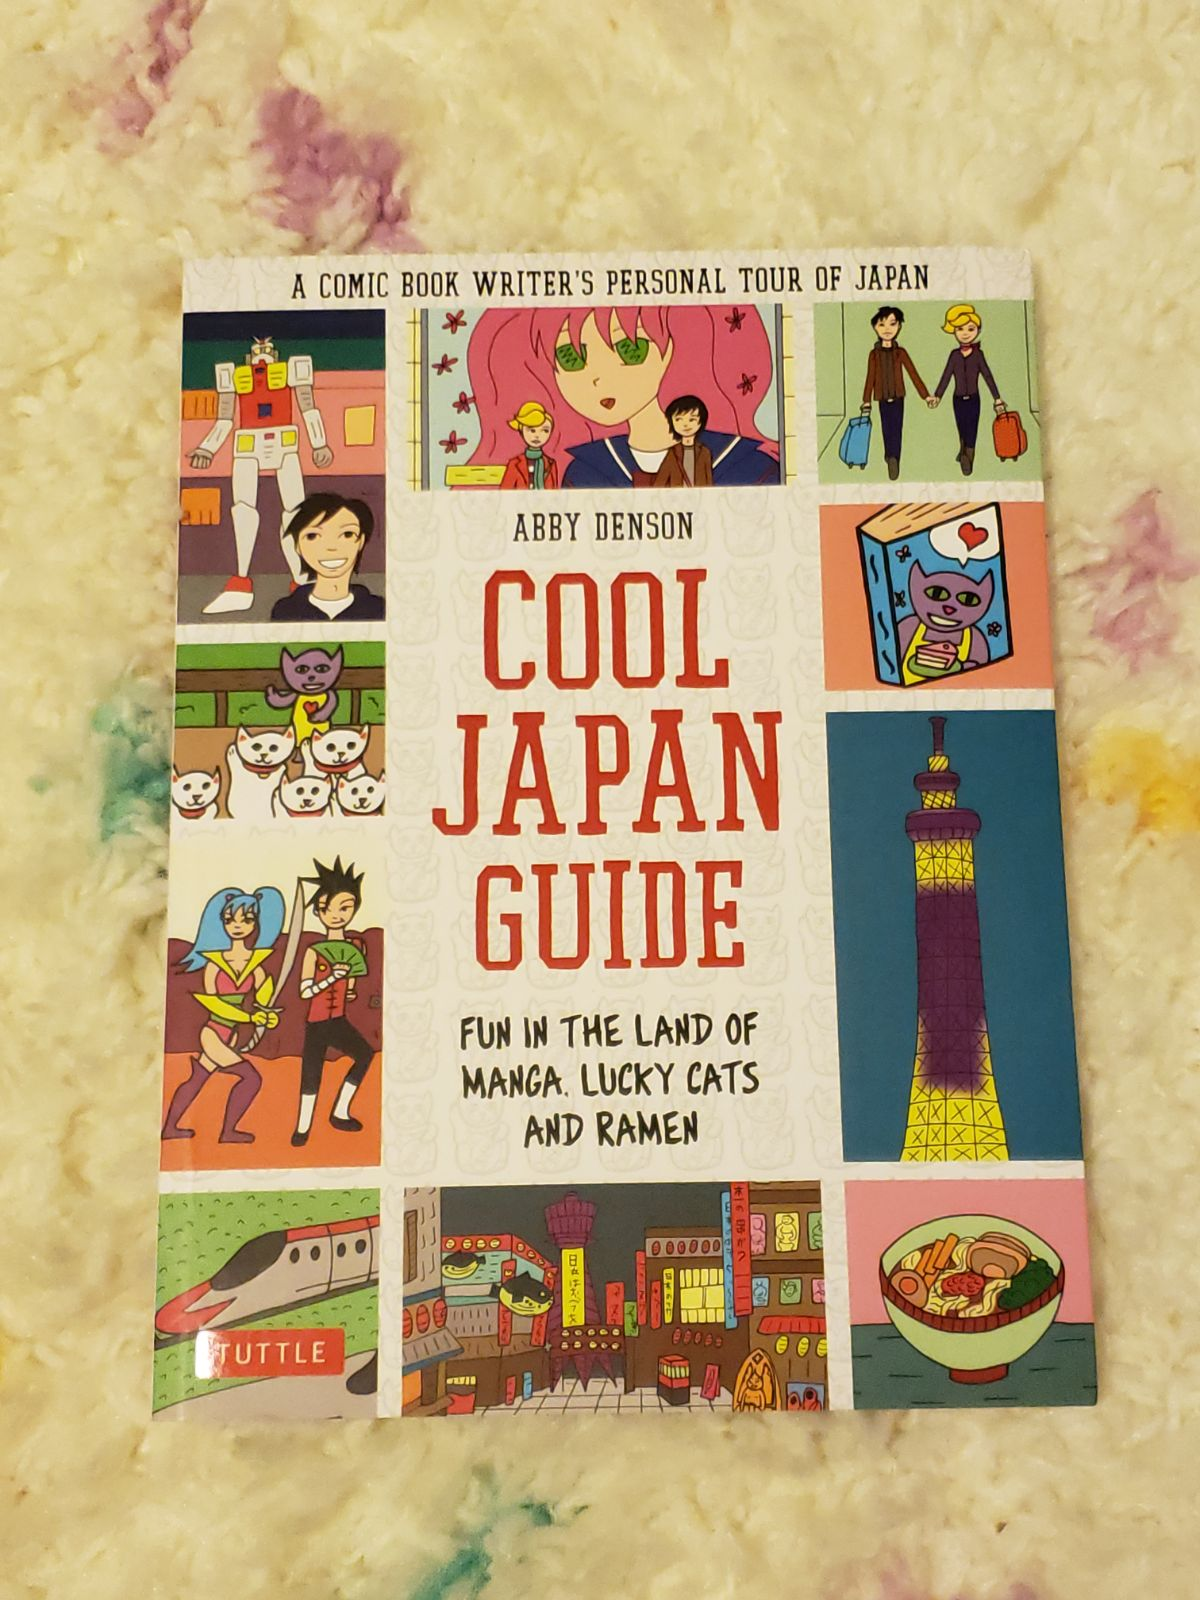 Cool Japan Guide by Abby Denson